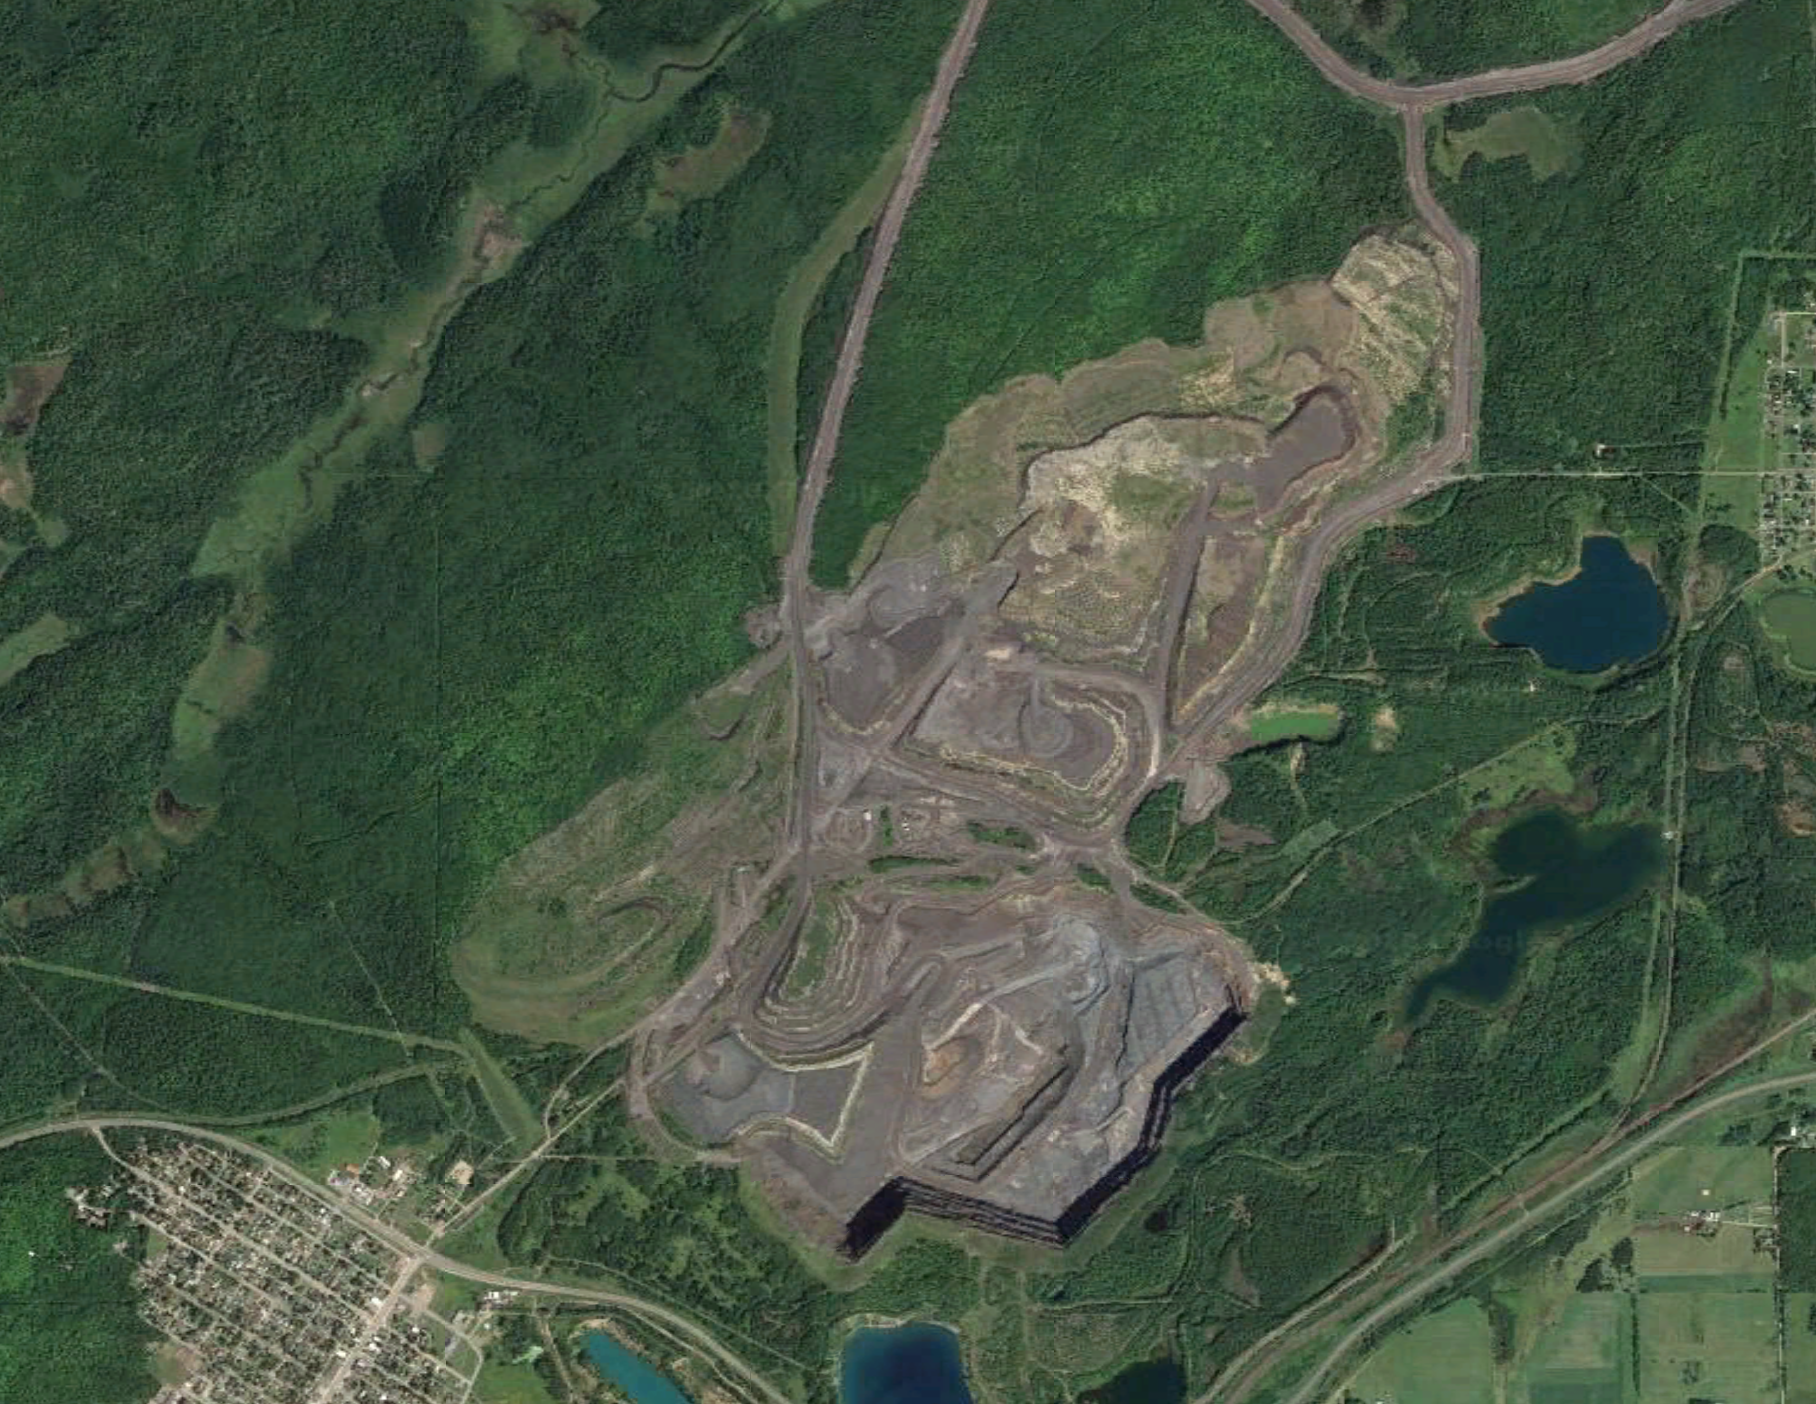 Elcor now, as part of the ArcelorMittal mine